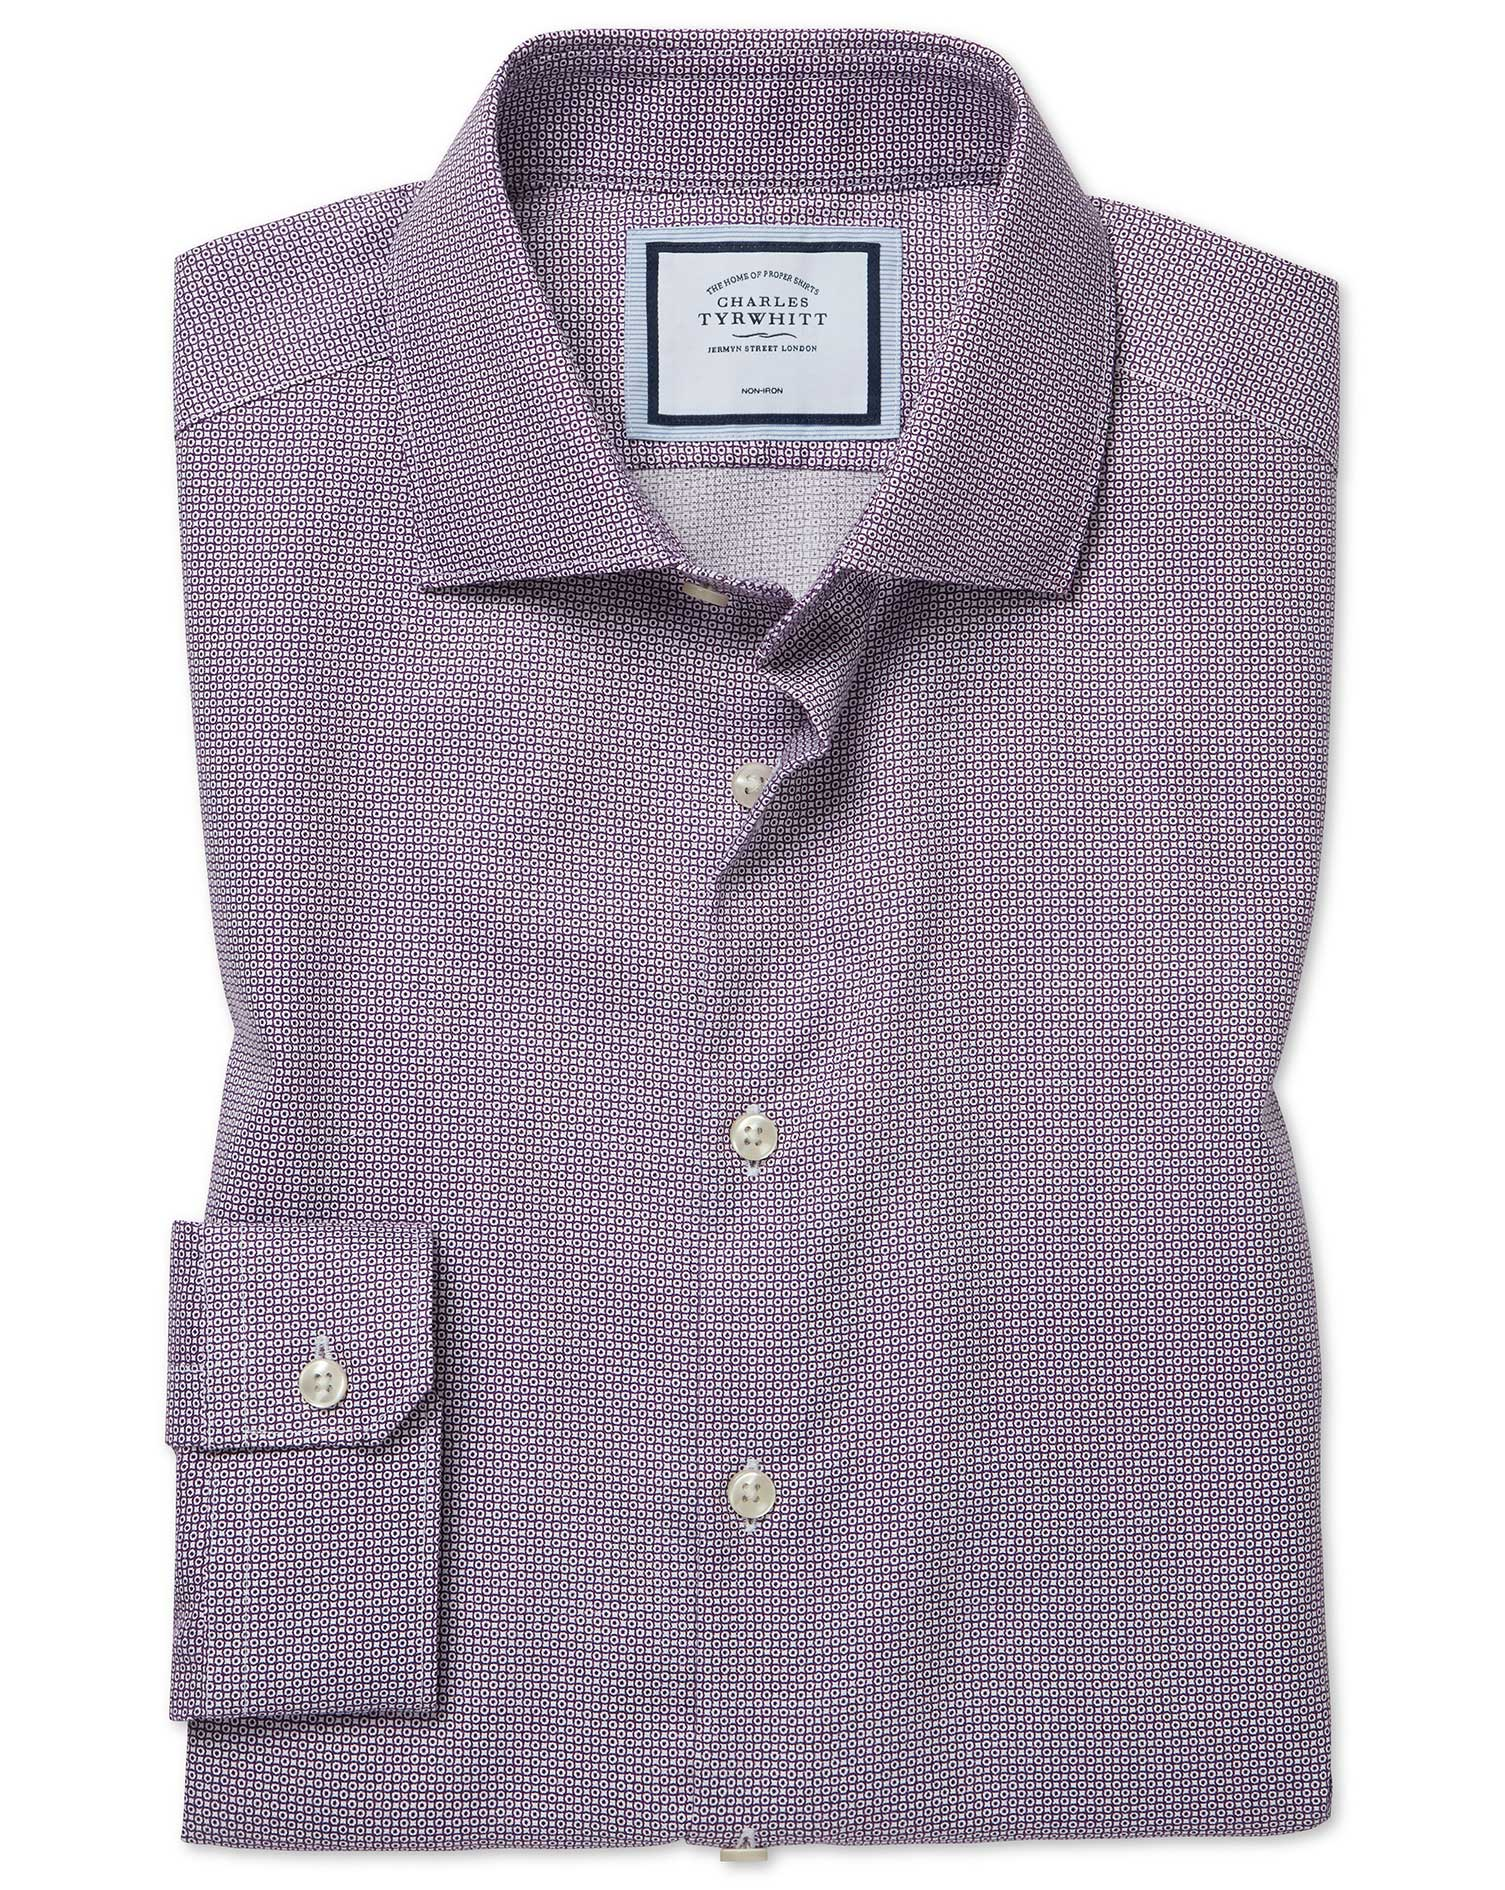 Super Slim Fit Non-Iron Spot Print Purple Cotton Formal Shirt Single Cuff Size 16.5/34 by Charles Ty